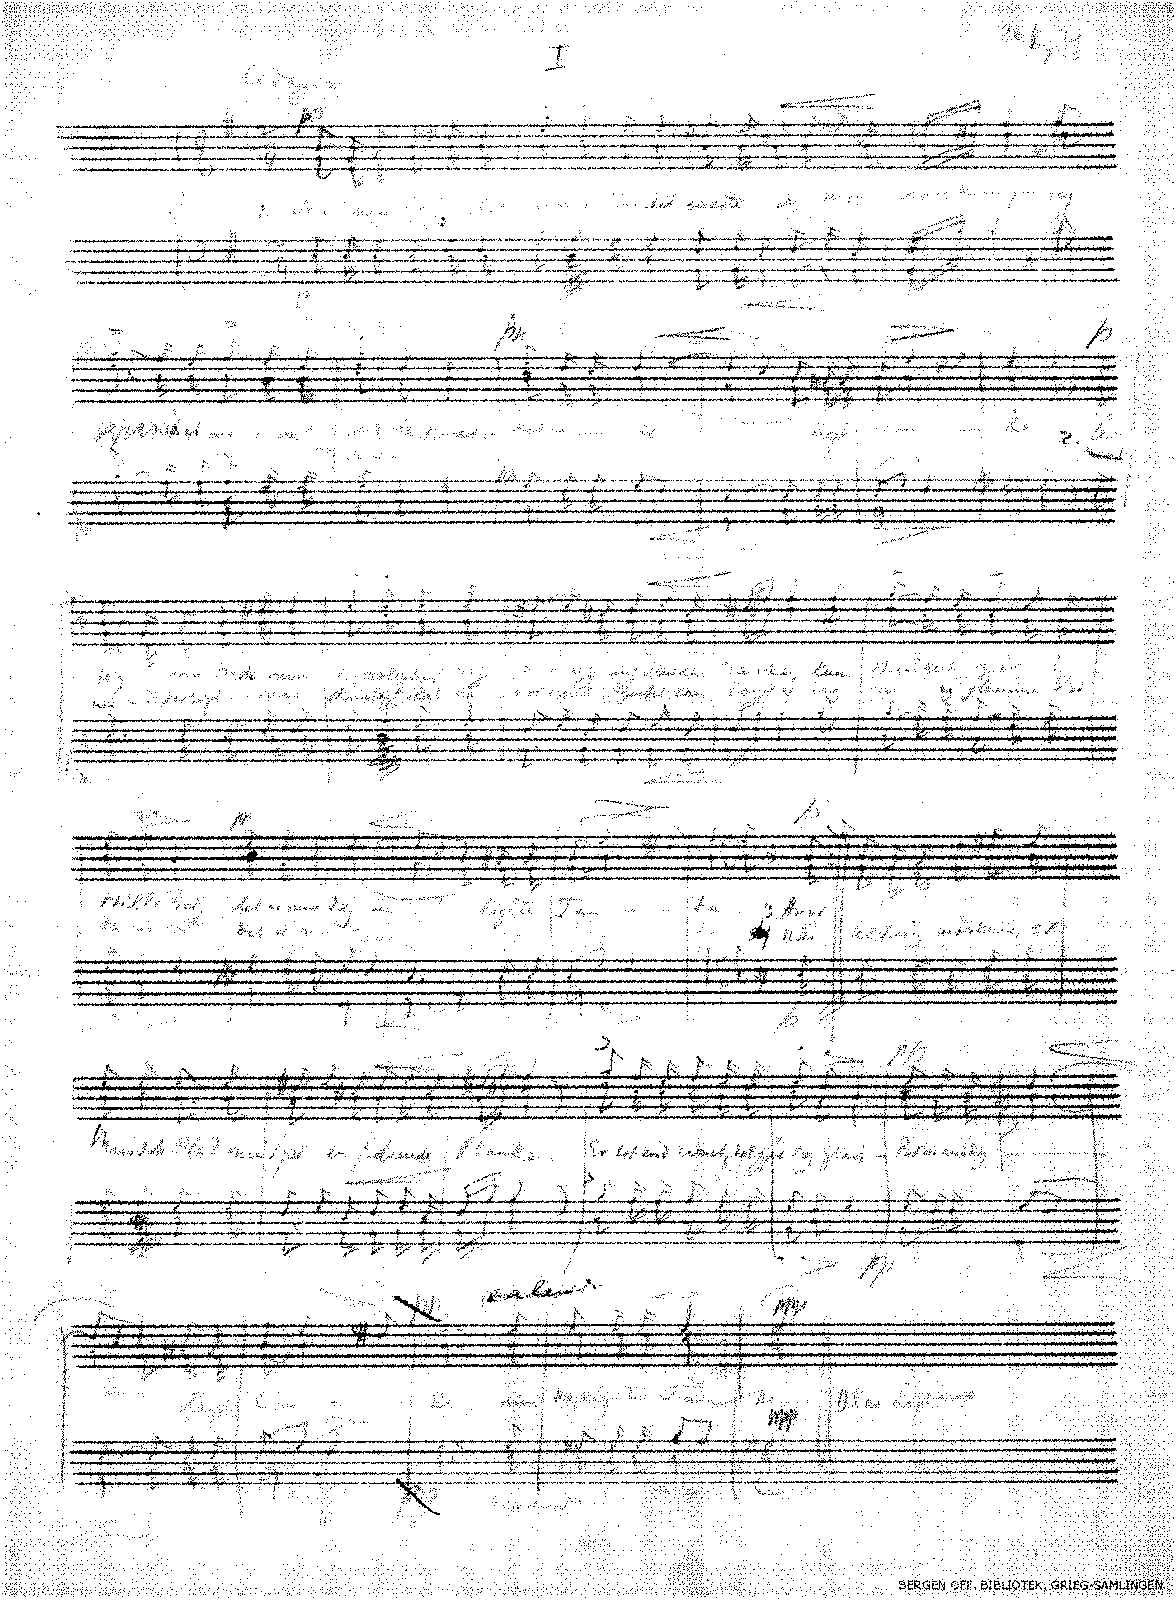 PMLP61860-Grieg Two songs for male choir EG 169 1.pdf